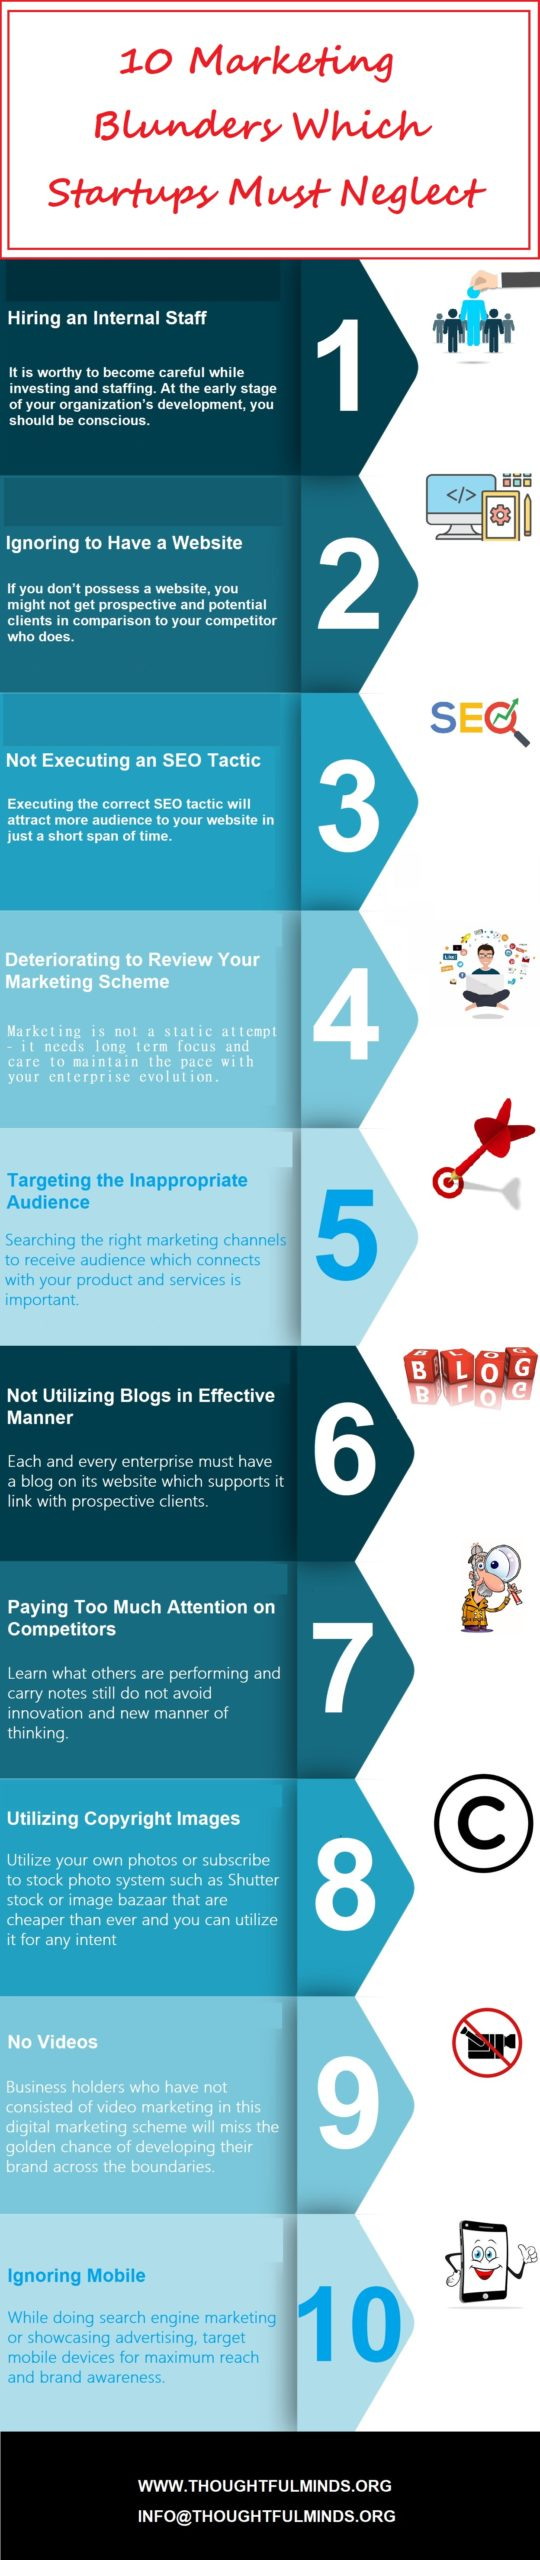 10 Marketing Mistakes Which Startups Must Neglect Infographic - ThoughtfulMinds